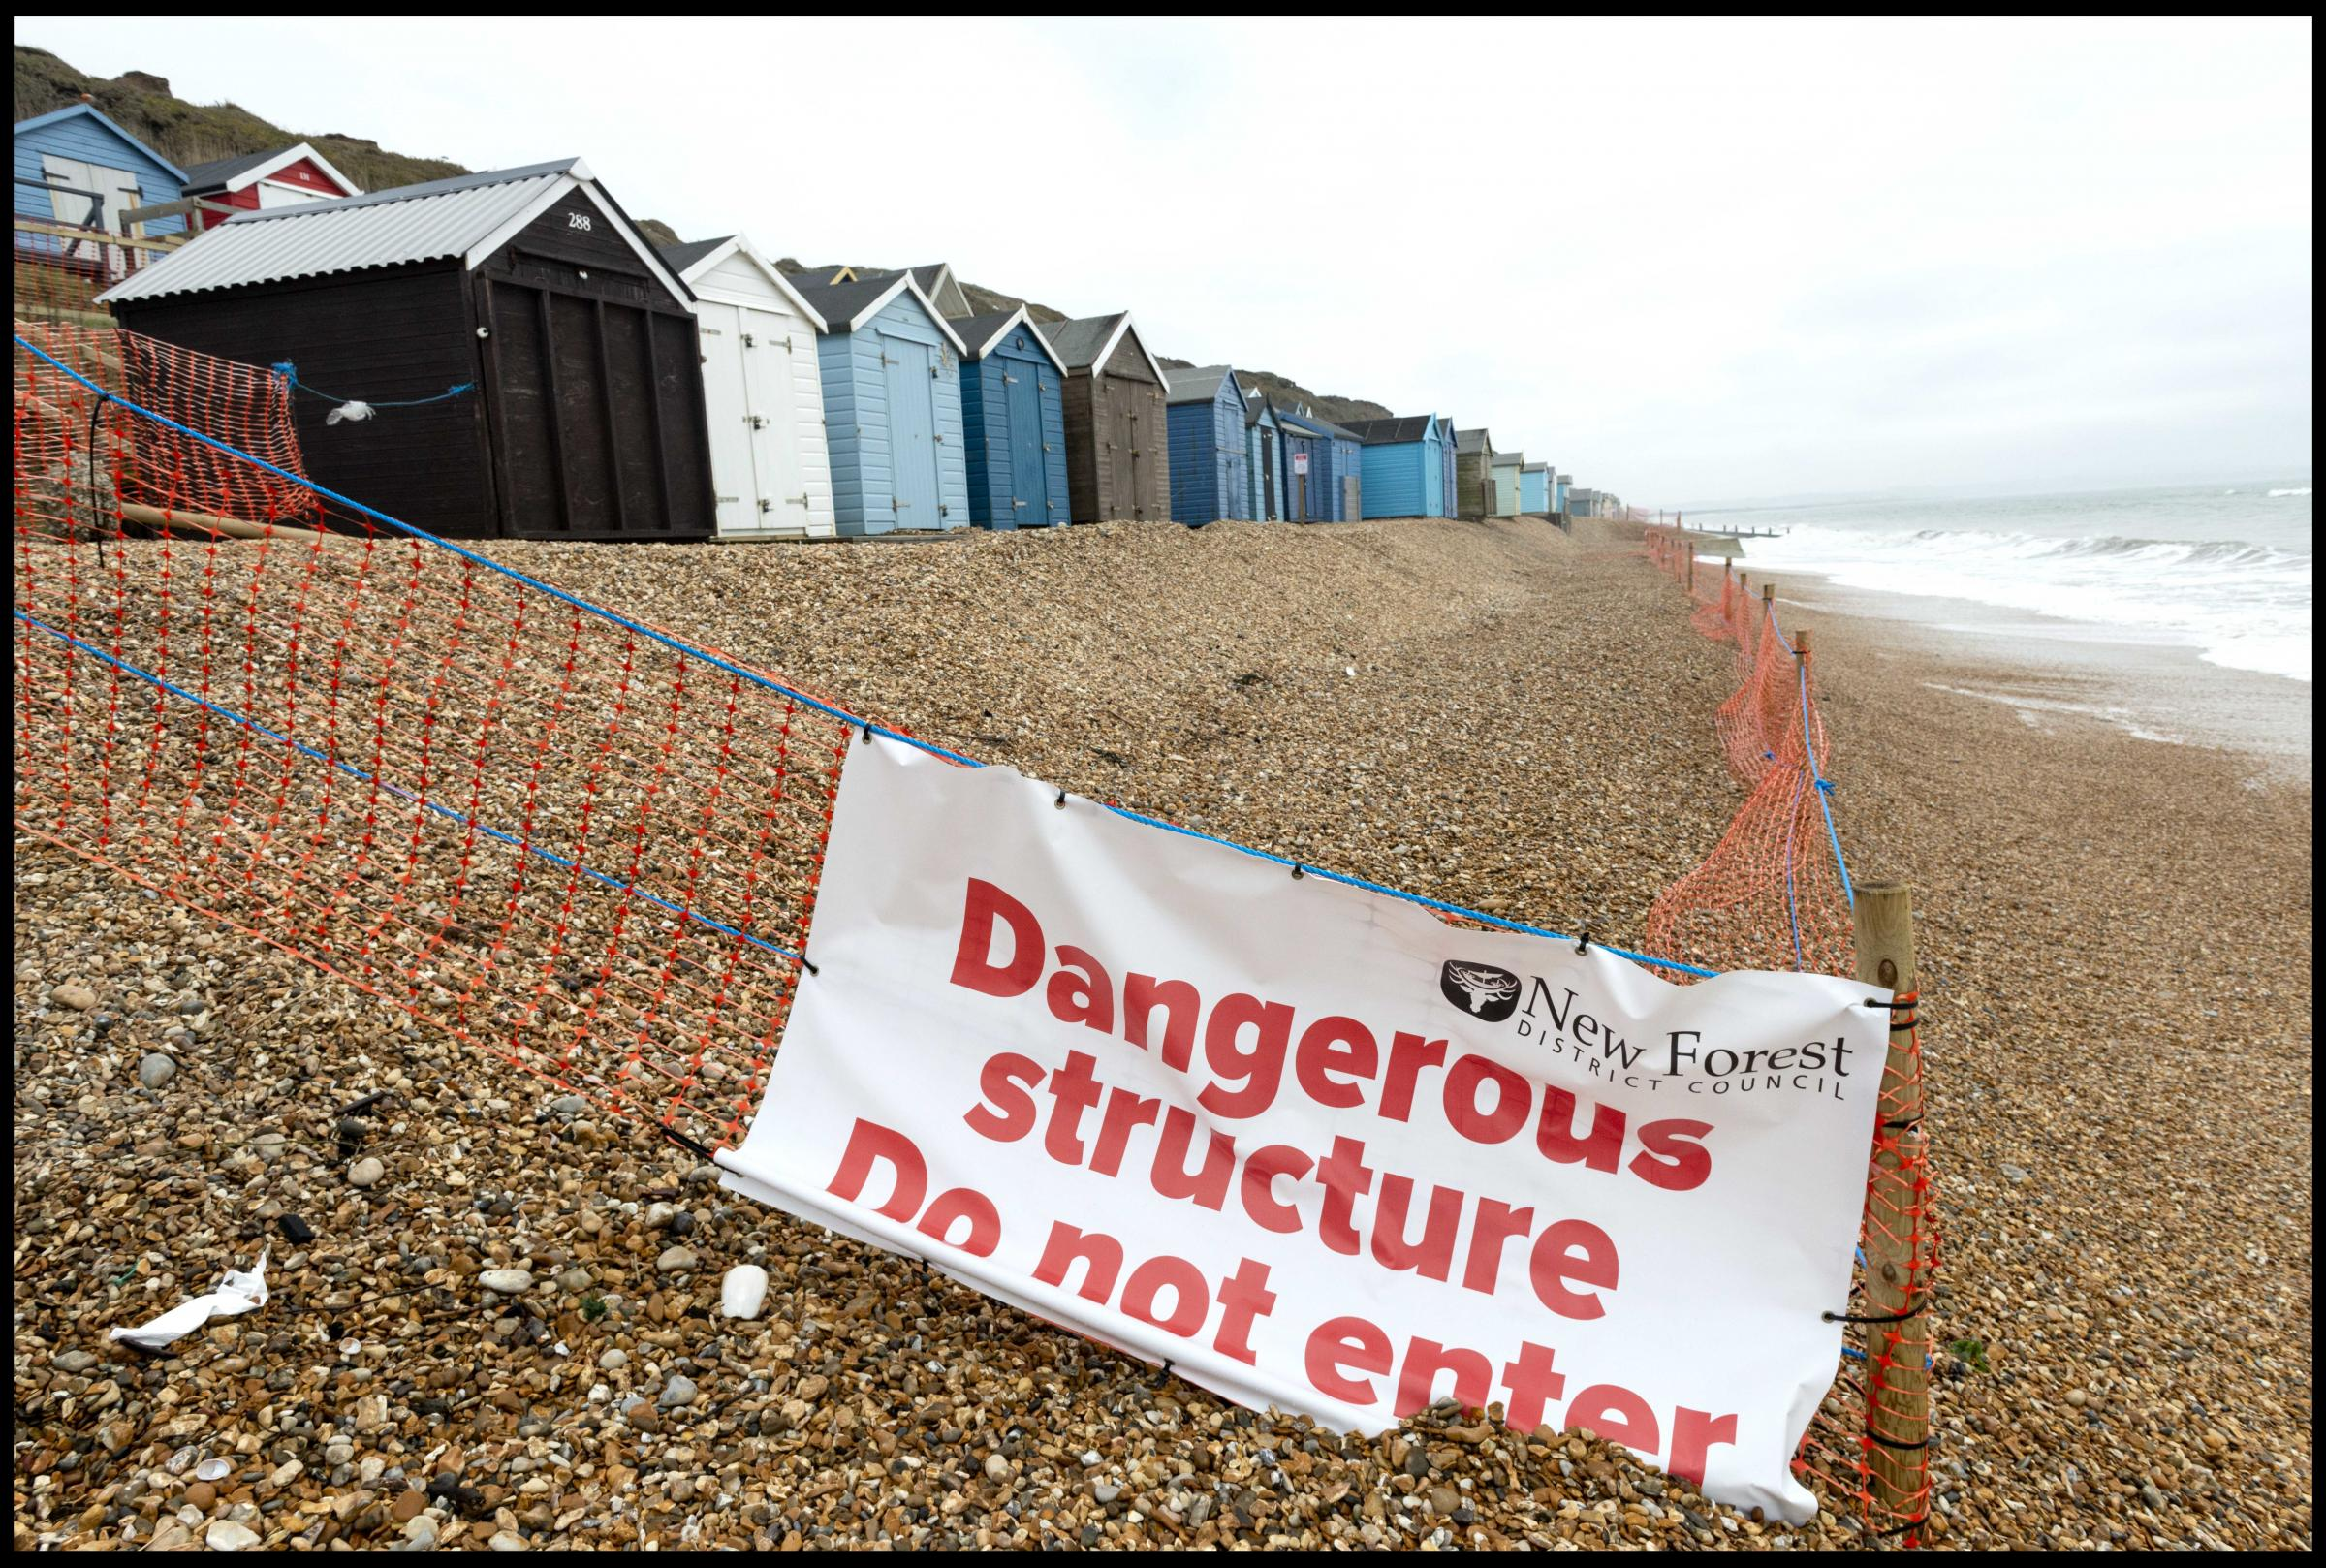 DANGER: New Forest District Council fenced off a section of beach at Milford-on-Sea earlier this year